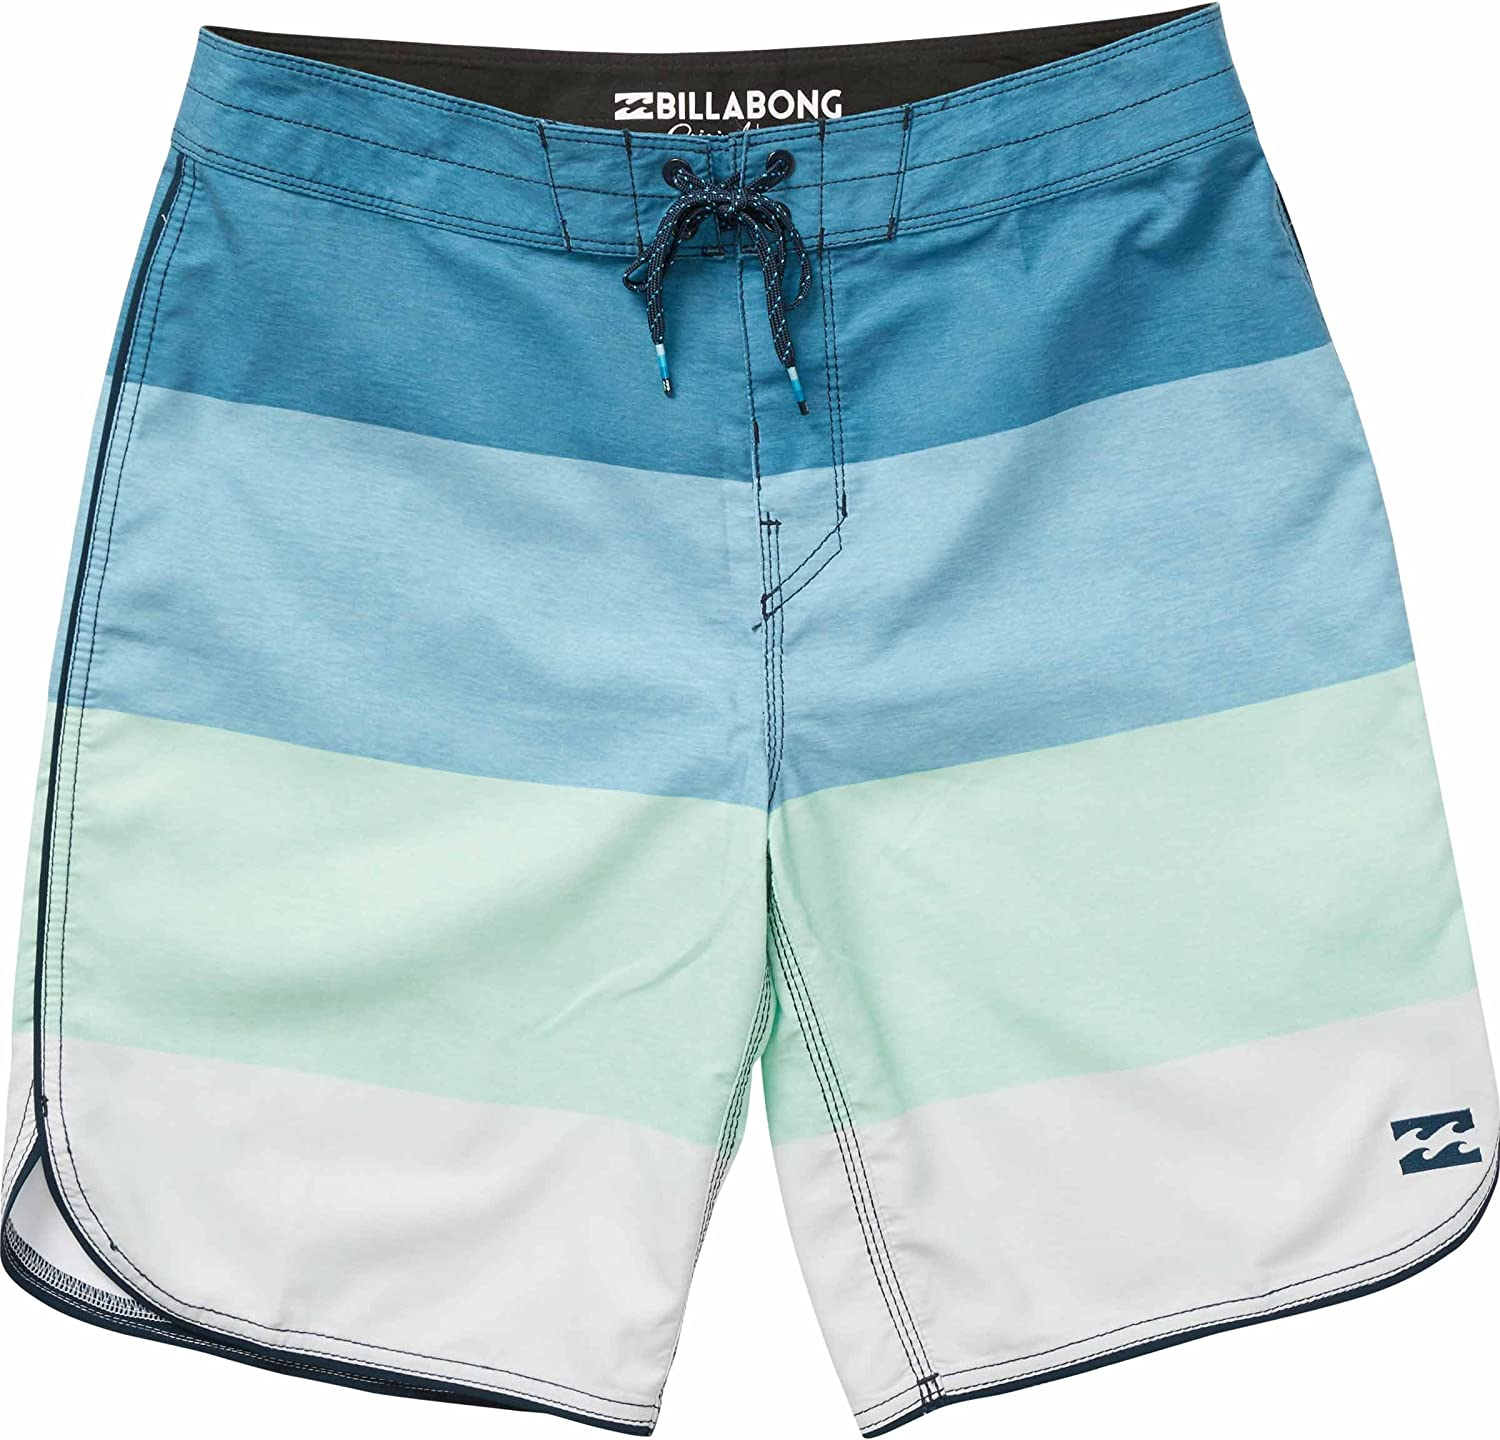 Billabong Men's 73 Og Stripe